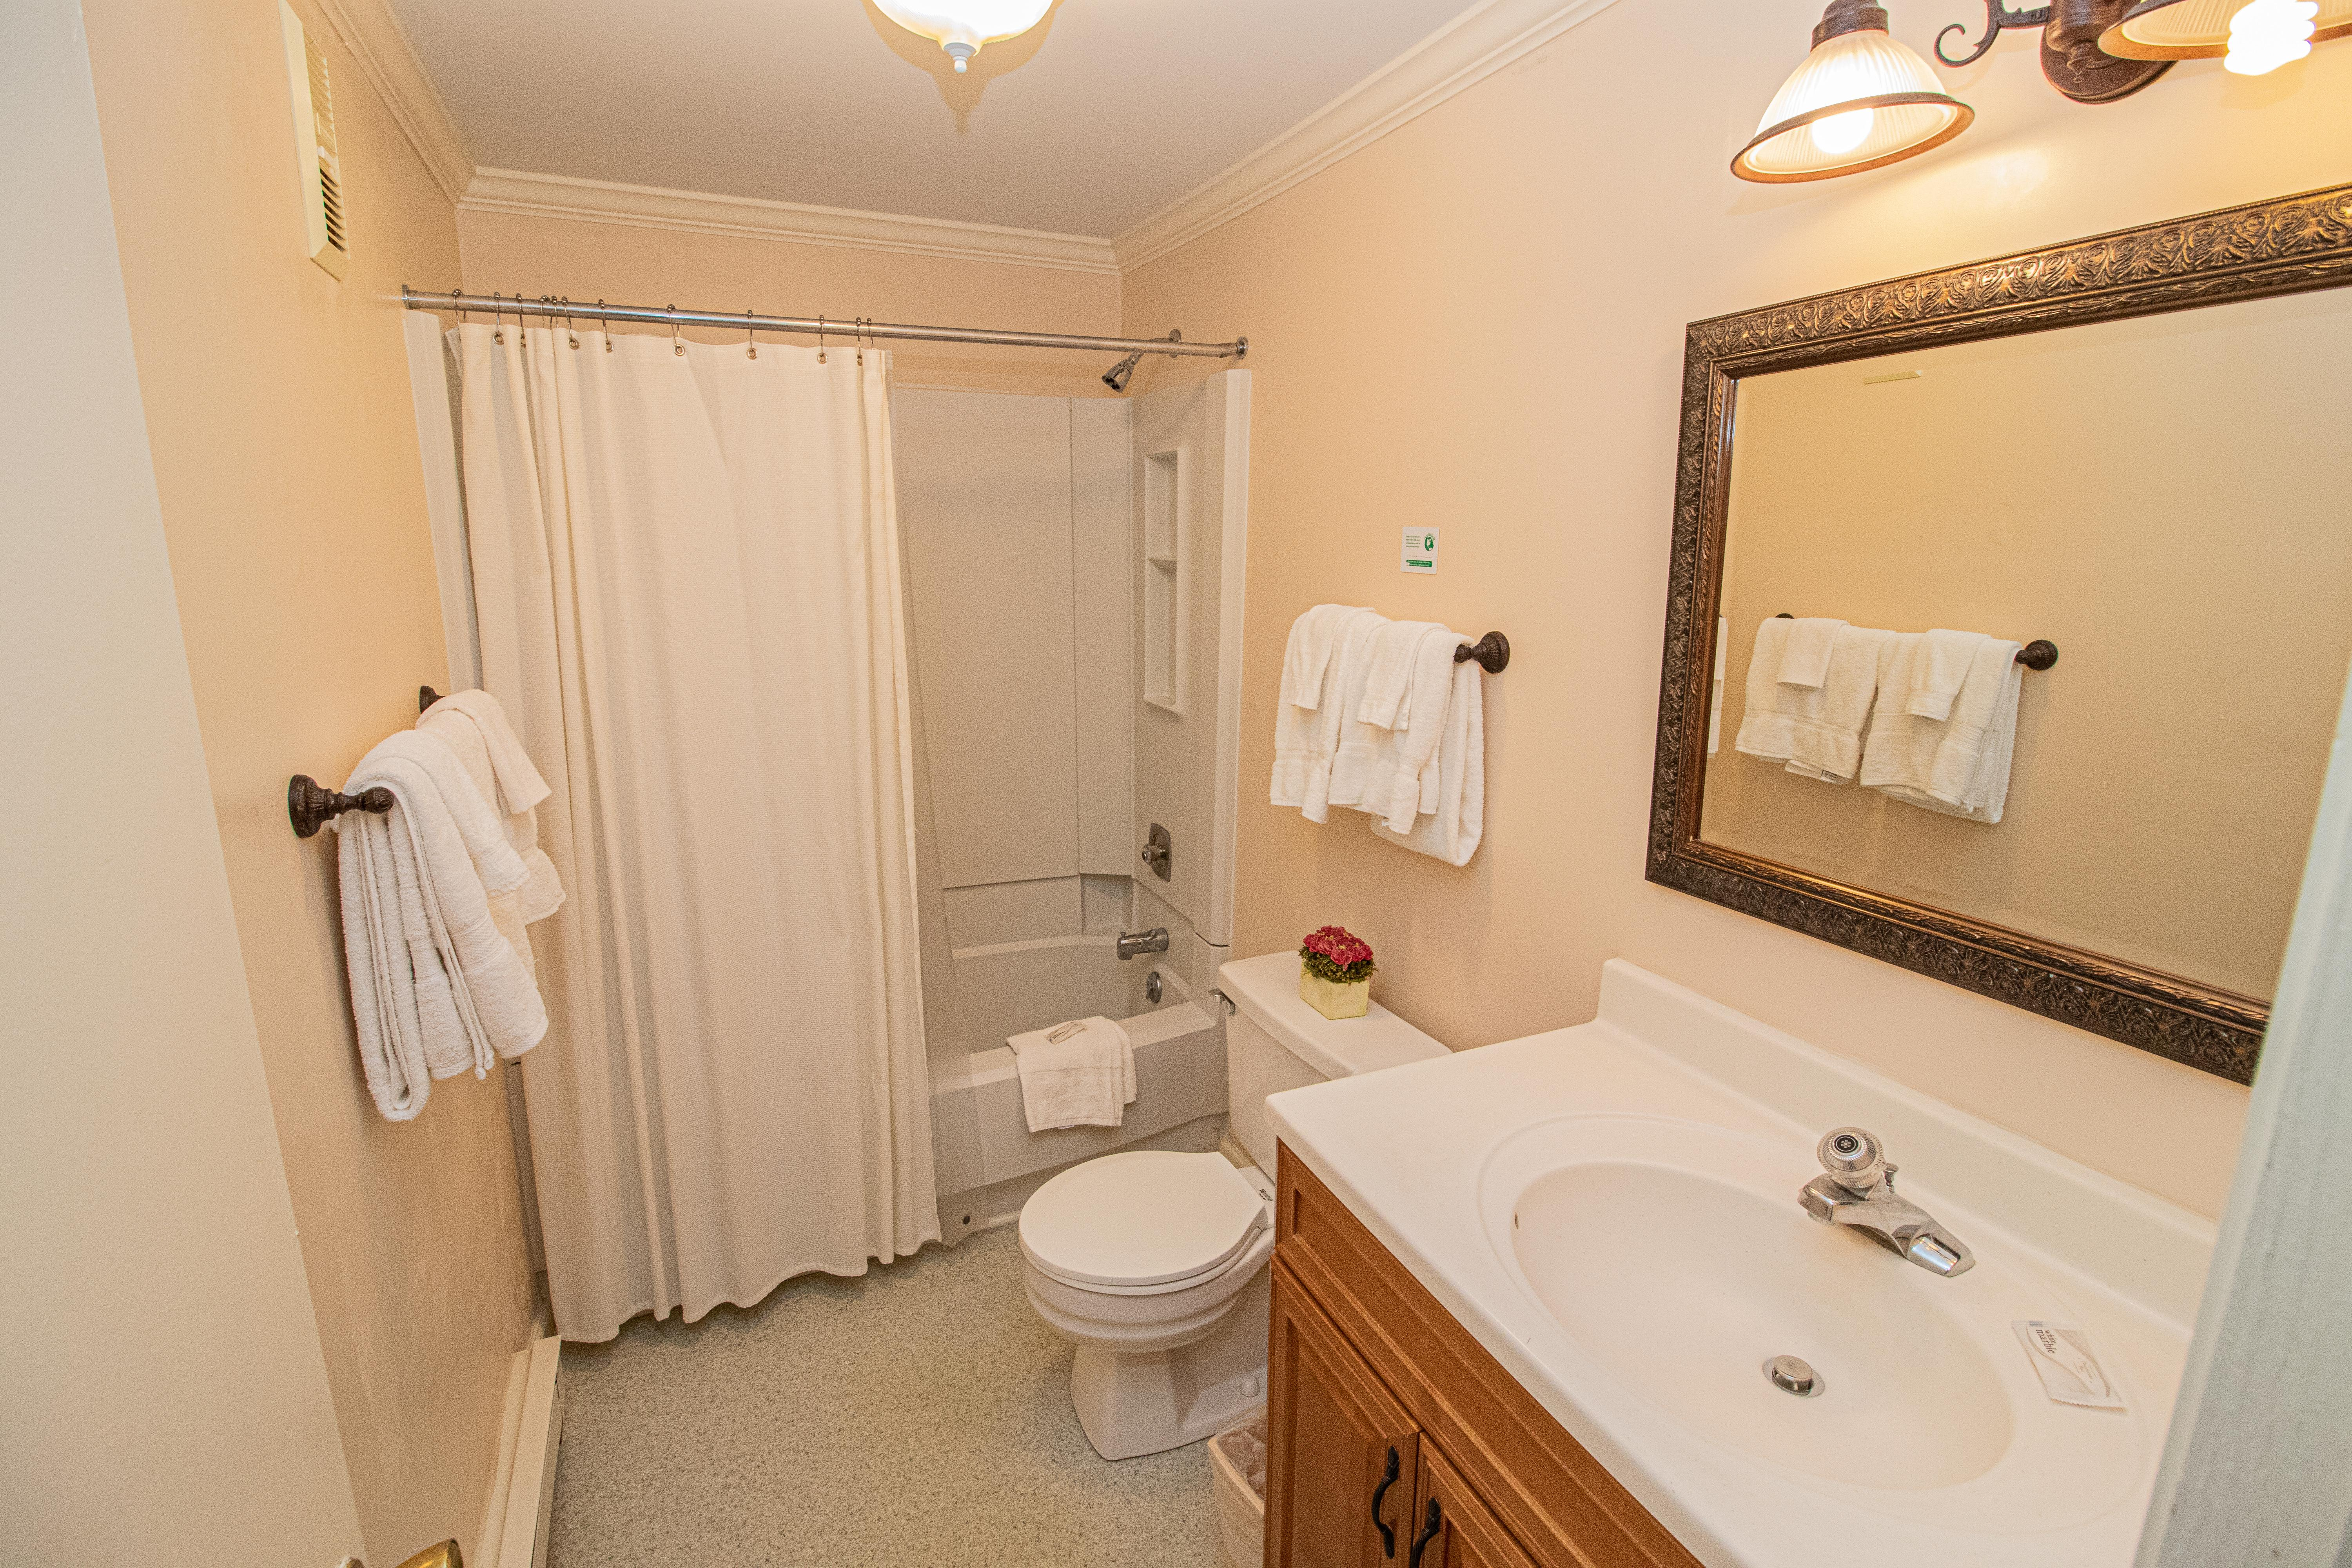 Private bathroom connected to master bedroom